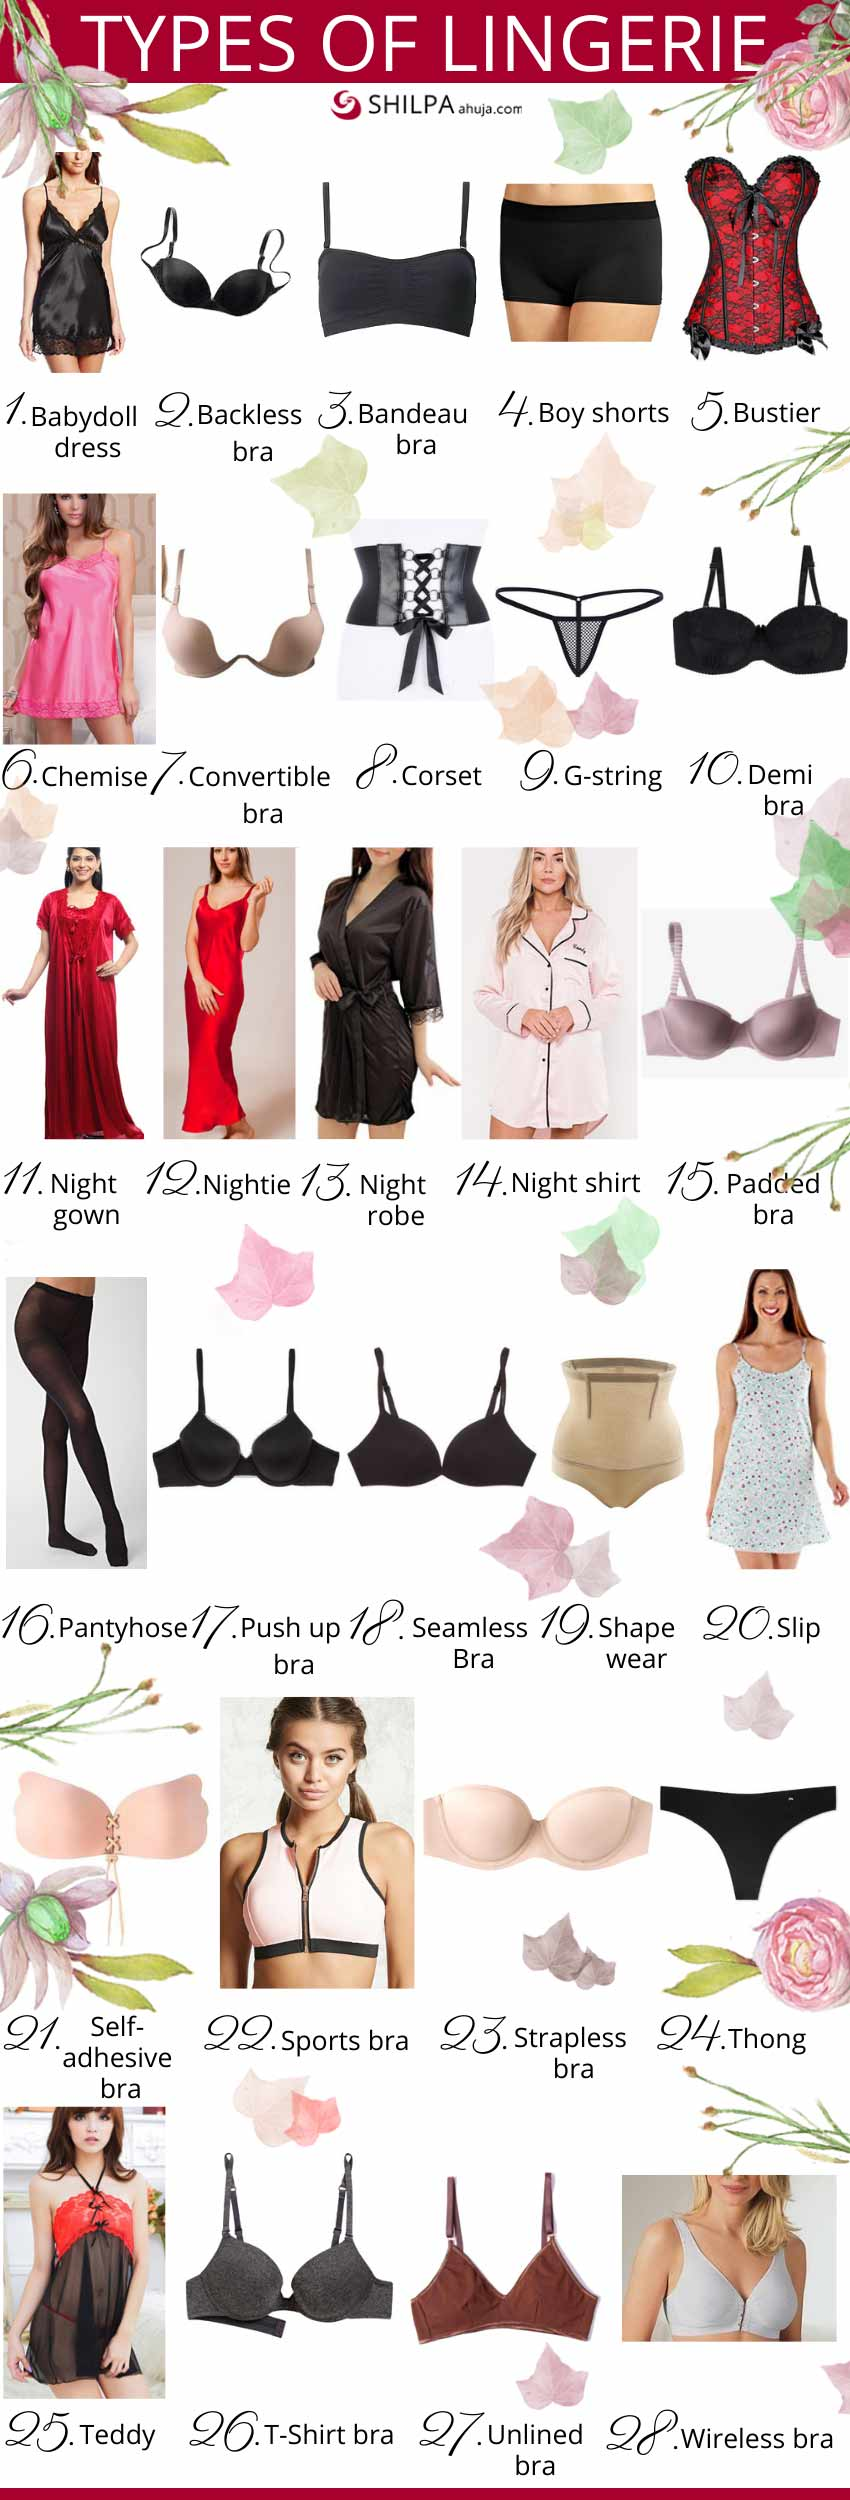 different Types-of-Lingerie womens underwear night wear